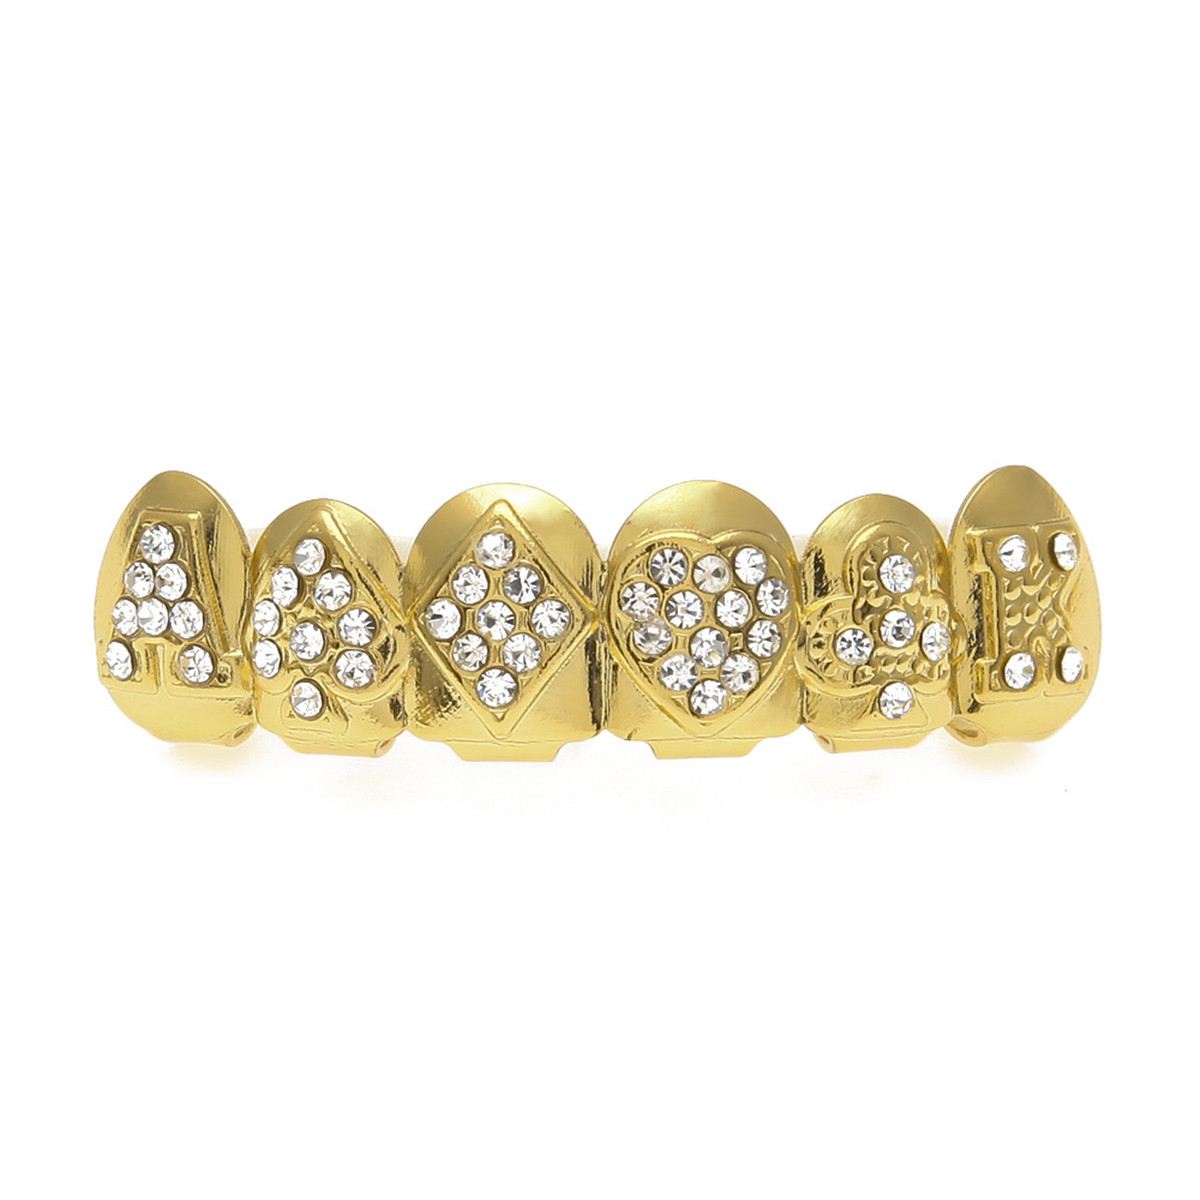 Gold-Plated-Tooth-Grill-Set-Hip-Hop-Diamond-Teeth-Custom-Mouth-Cap-Top-Bottom thumbnail 8